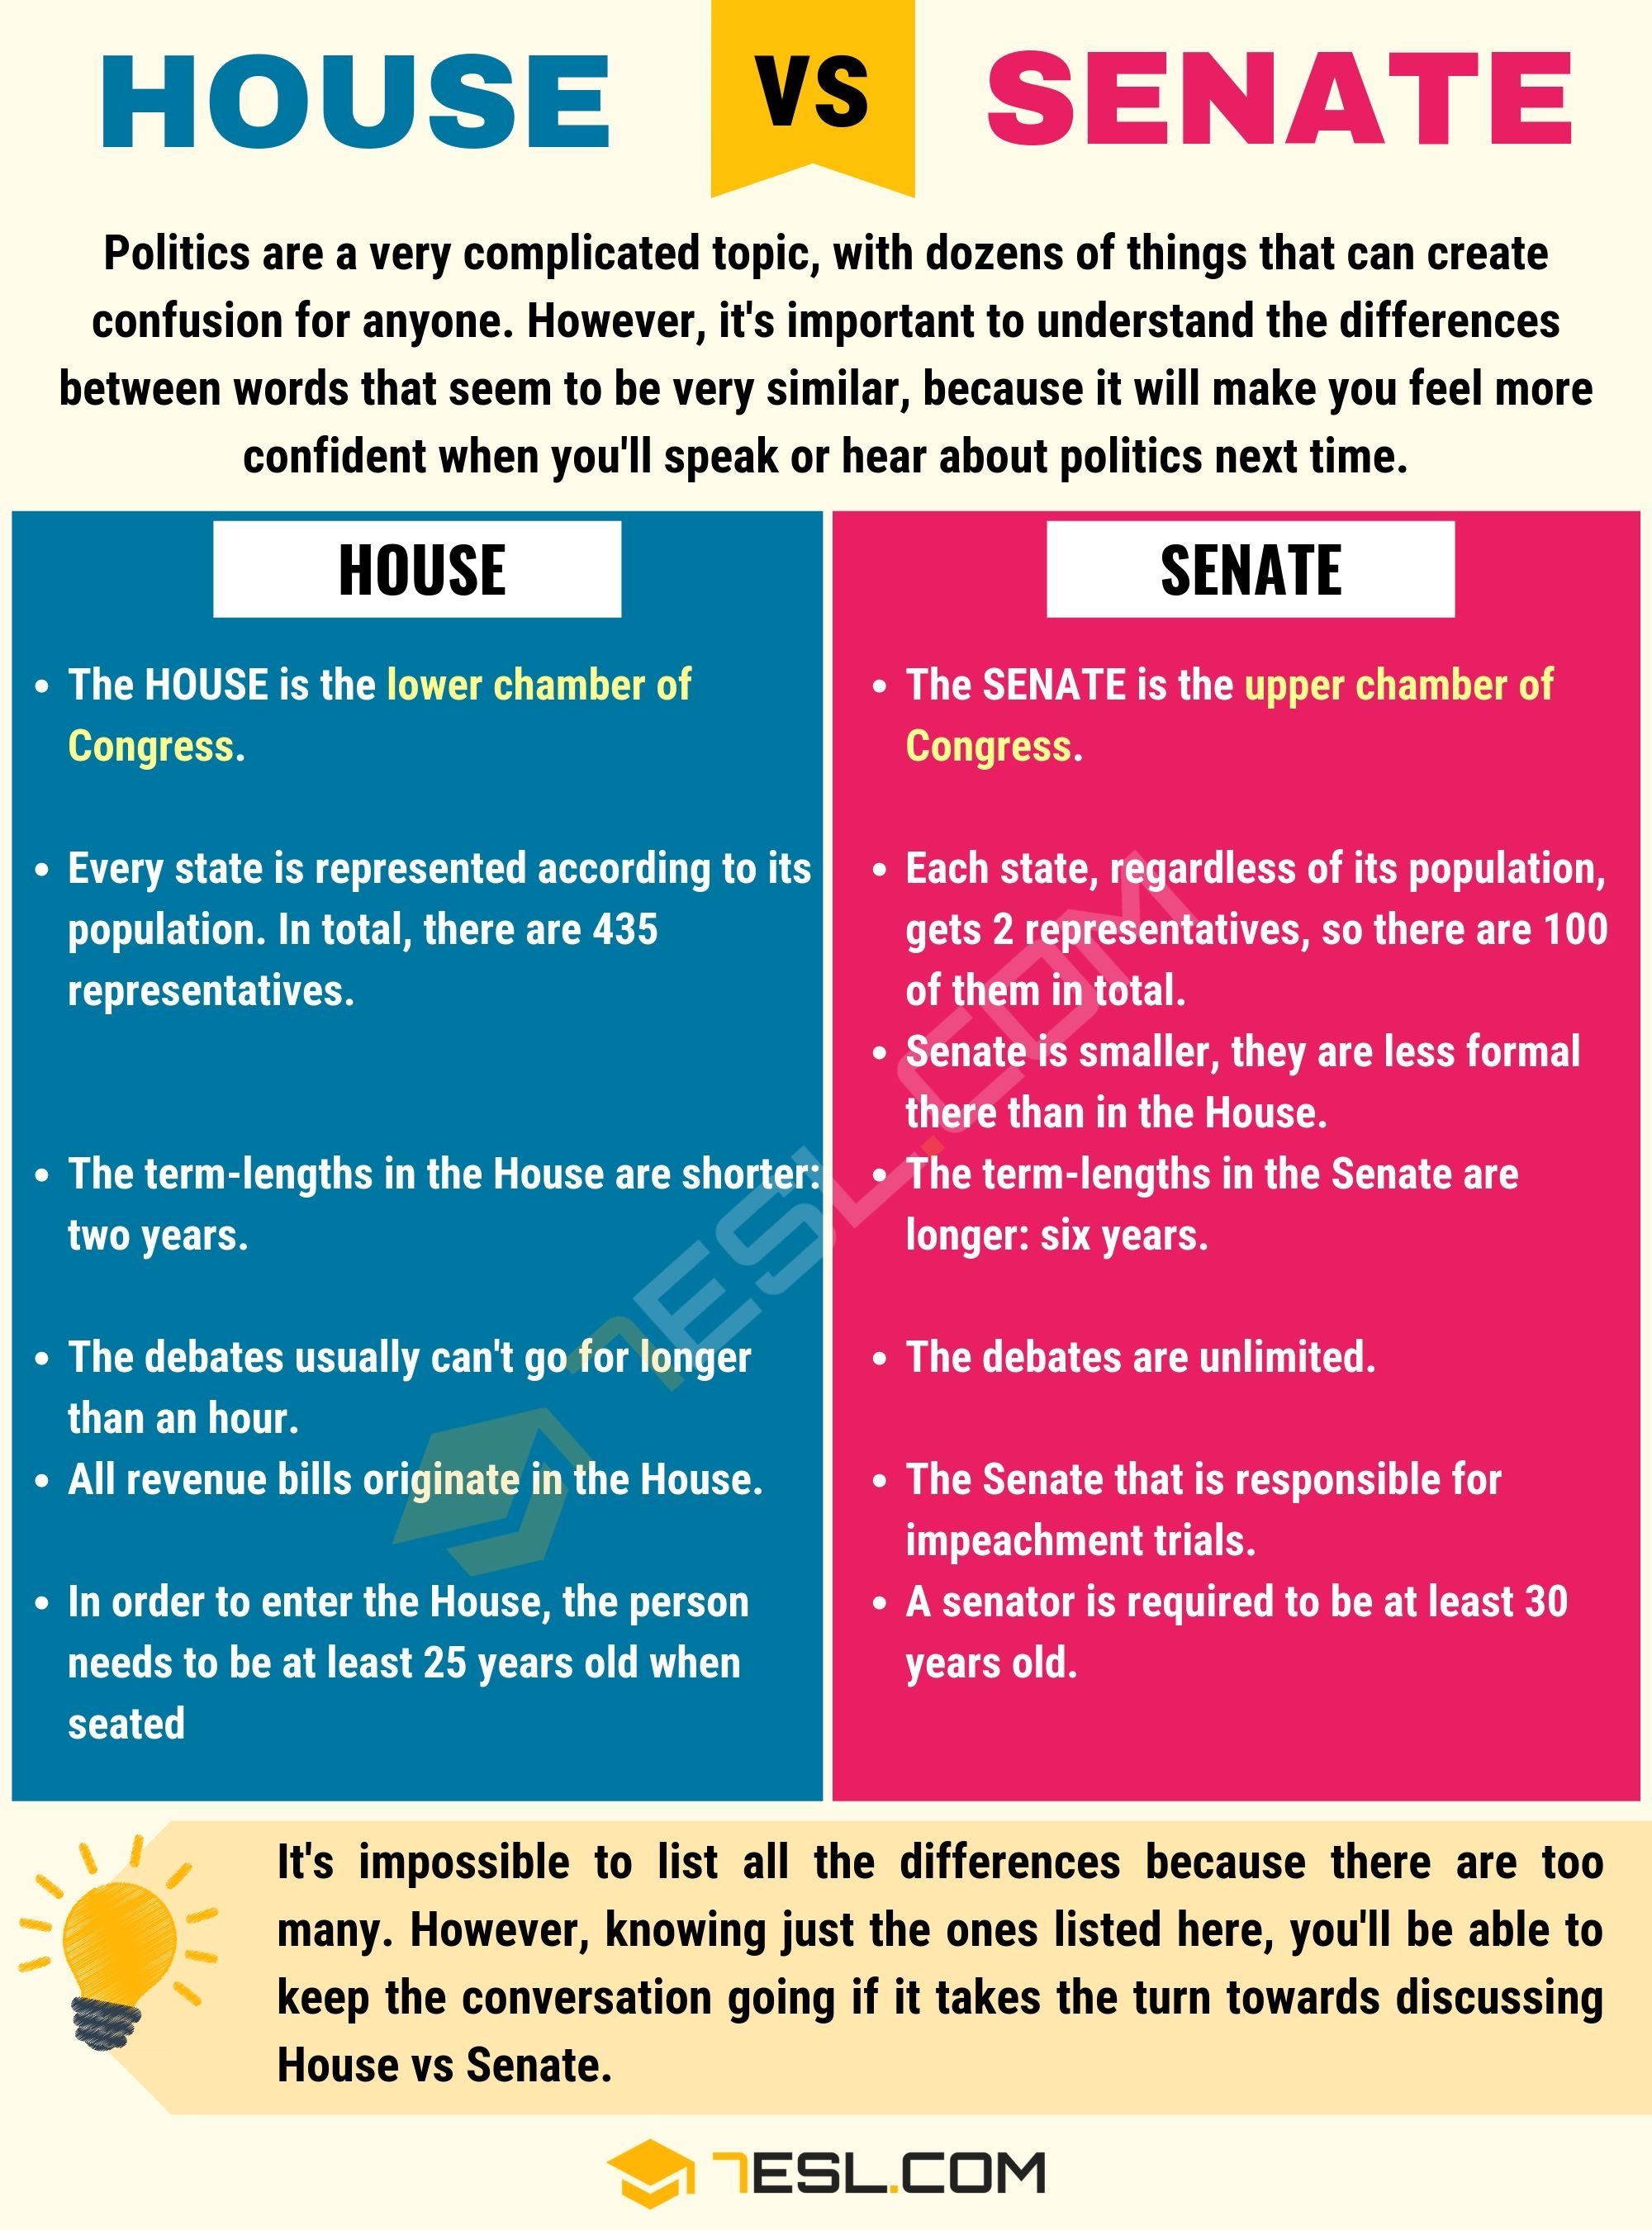 HOUSE-vs-SENATE